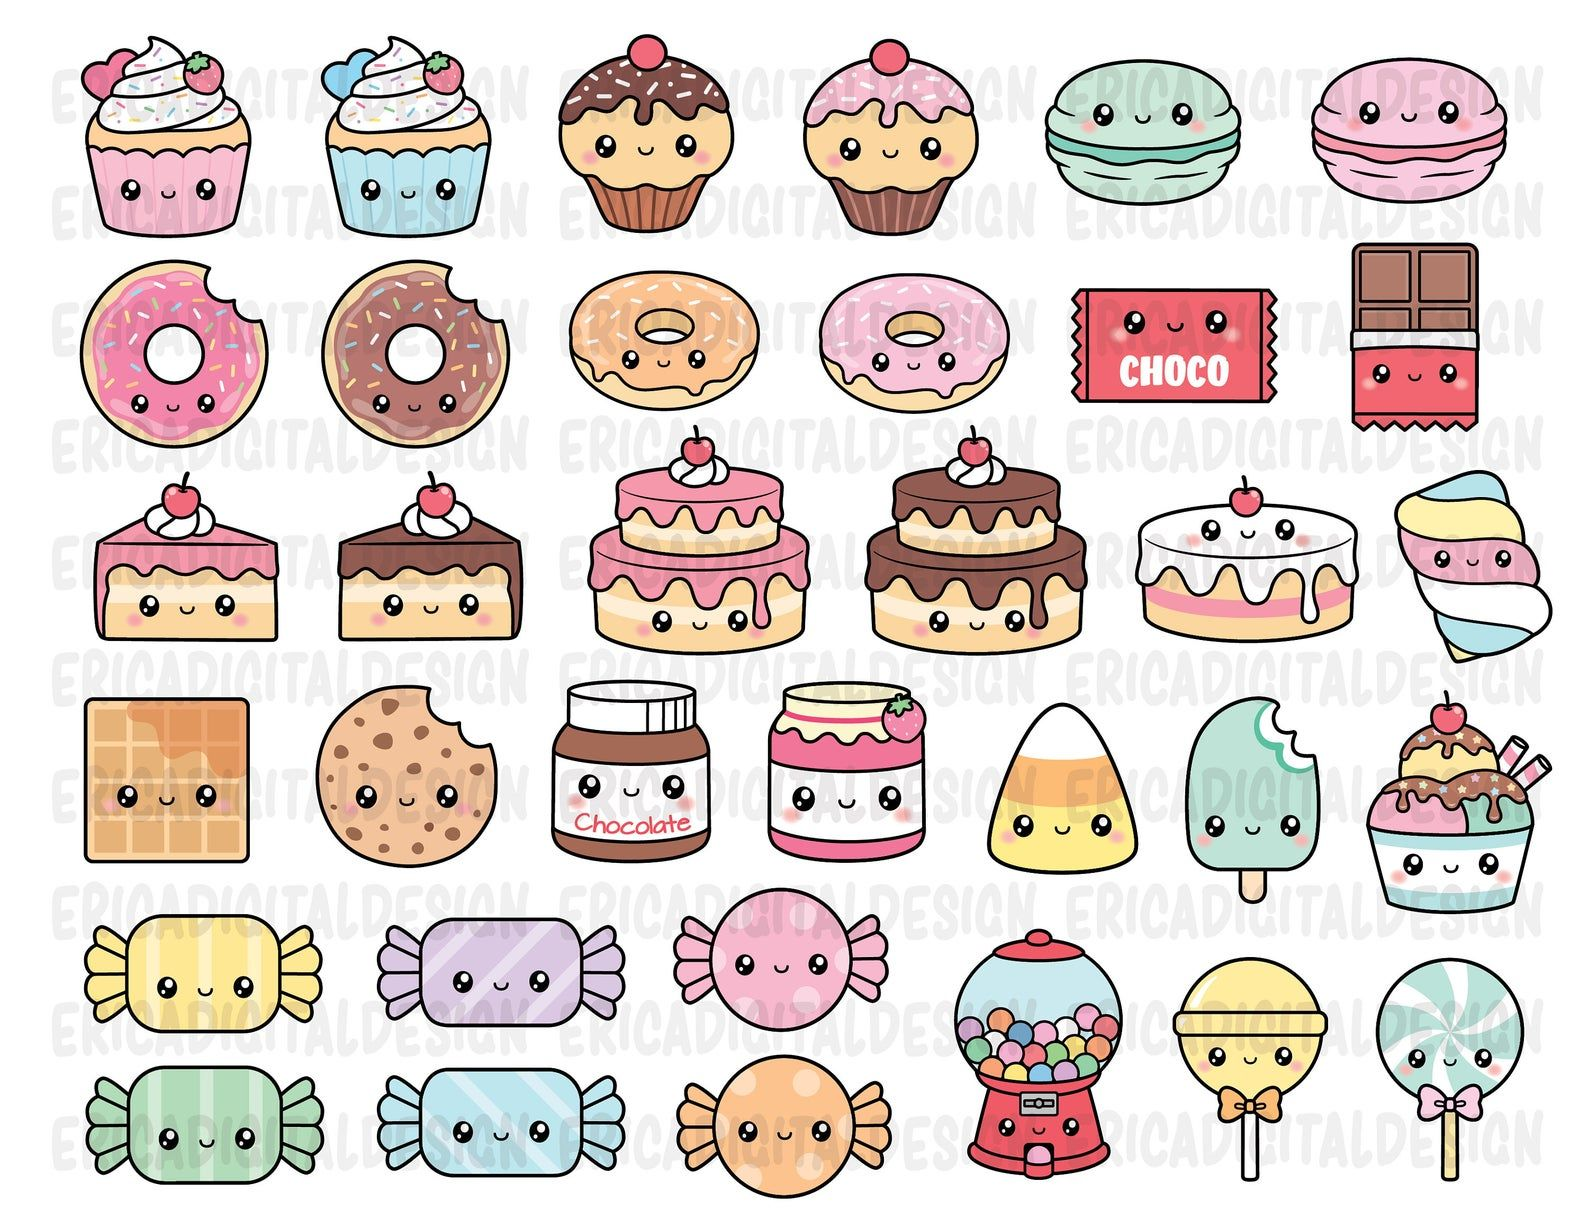 Kawaii Sweets Clipart Cute Sweet Candy Clipart Food Cake Donut Cupcake Gumball Machine Macaron Candies Cookie Ice Cream Muffin Dessert Party In 2021 Cute Doodle Art Cute Small Drawings Cute Easy Drawings